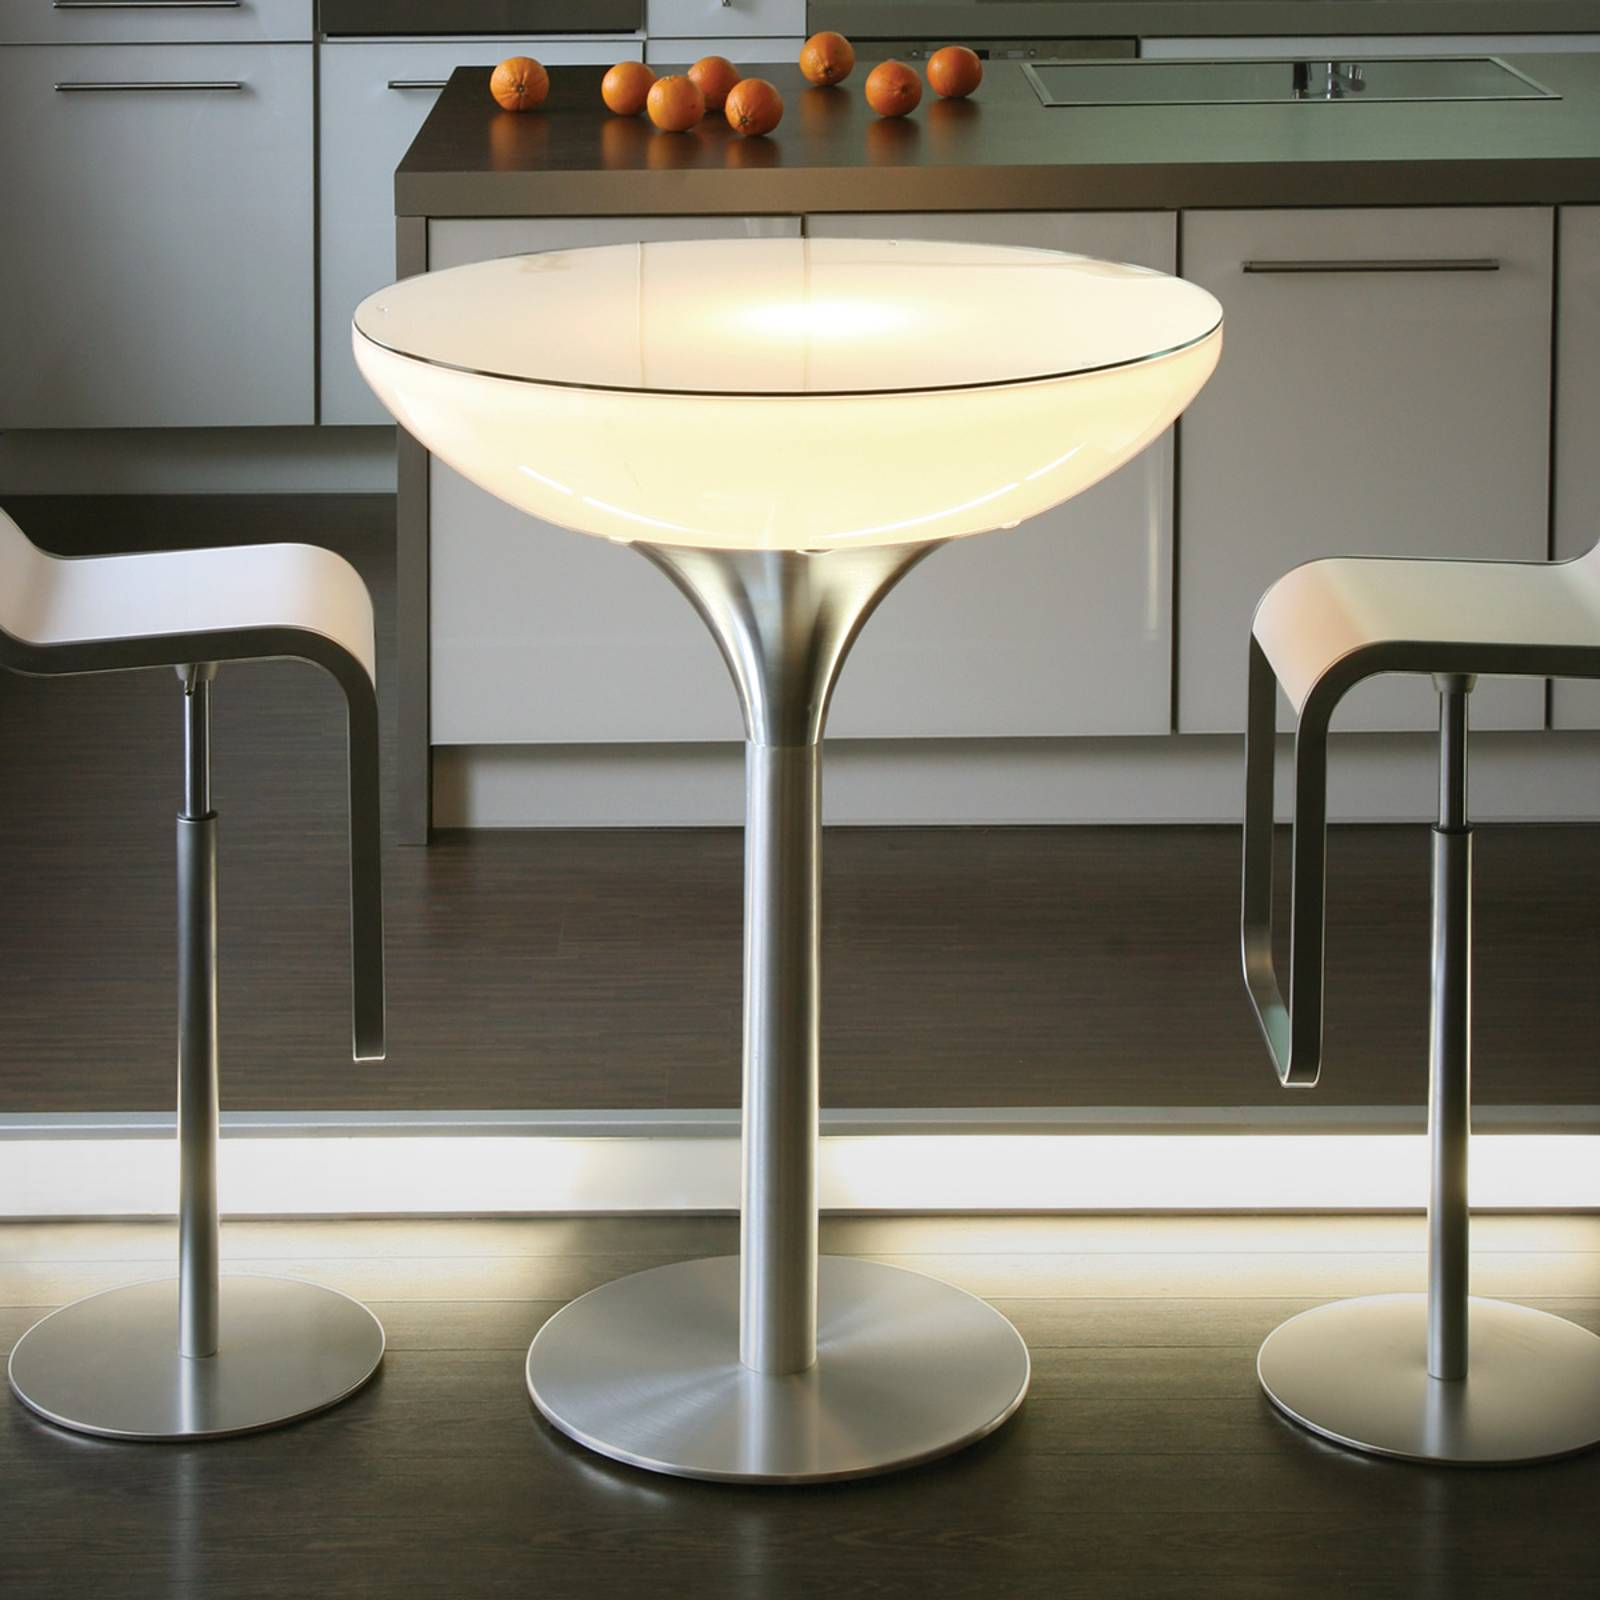 Lounge Table Indoor light table H 105cm